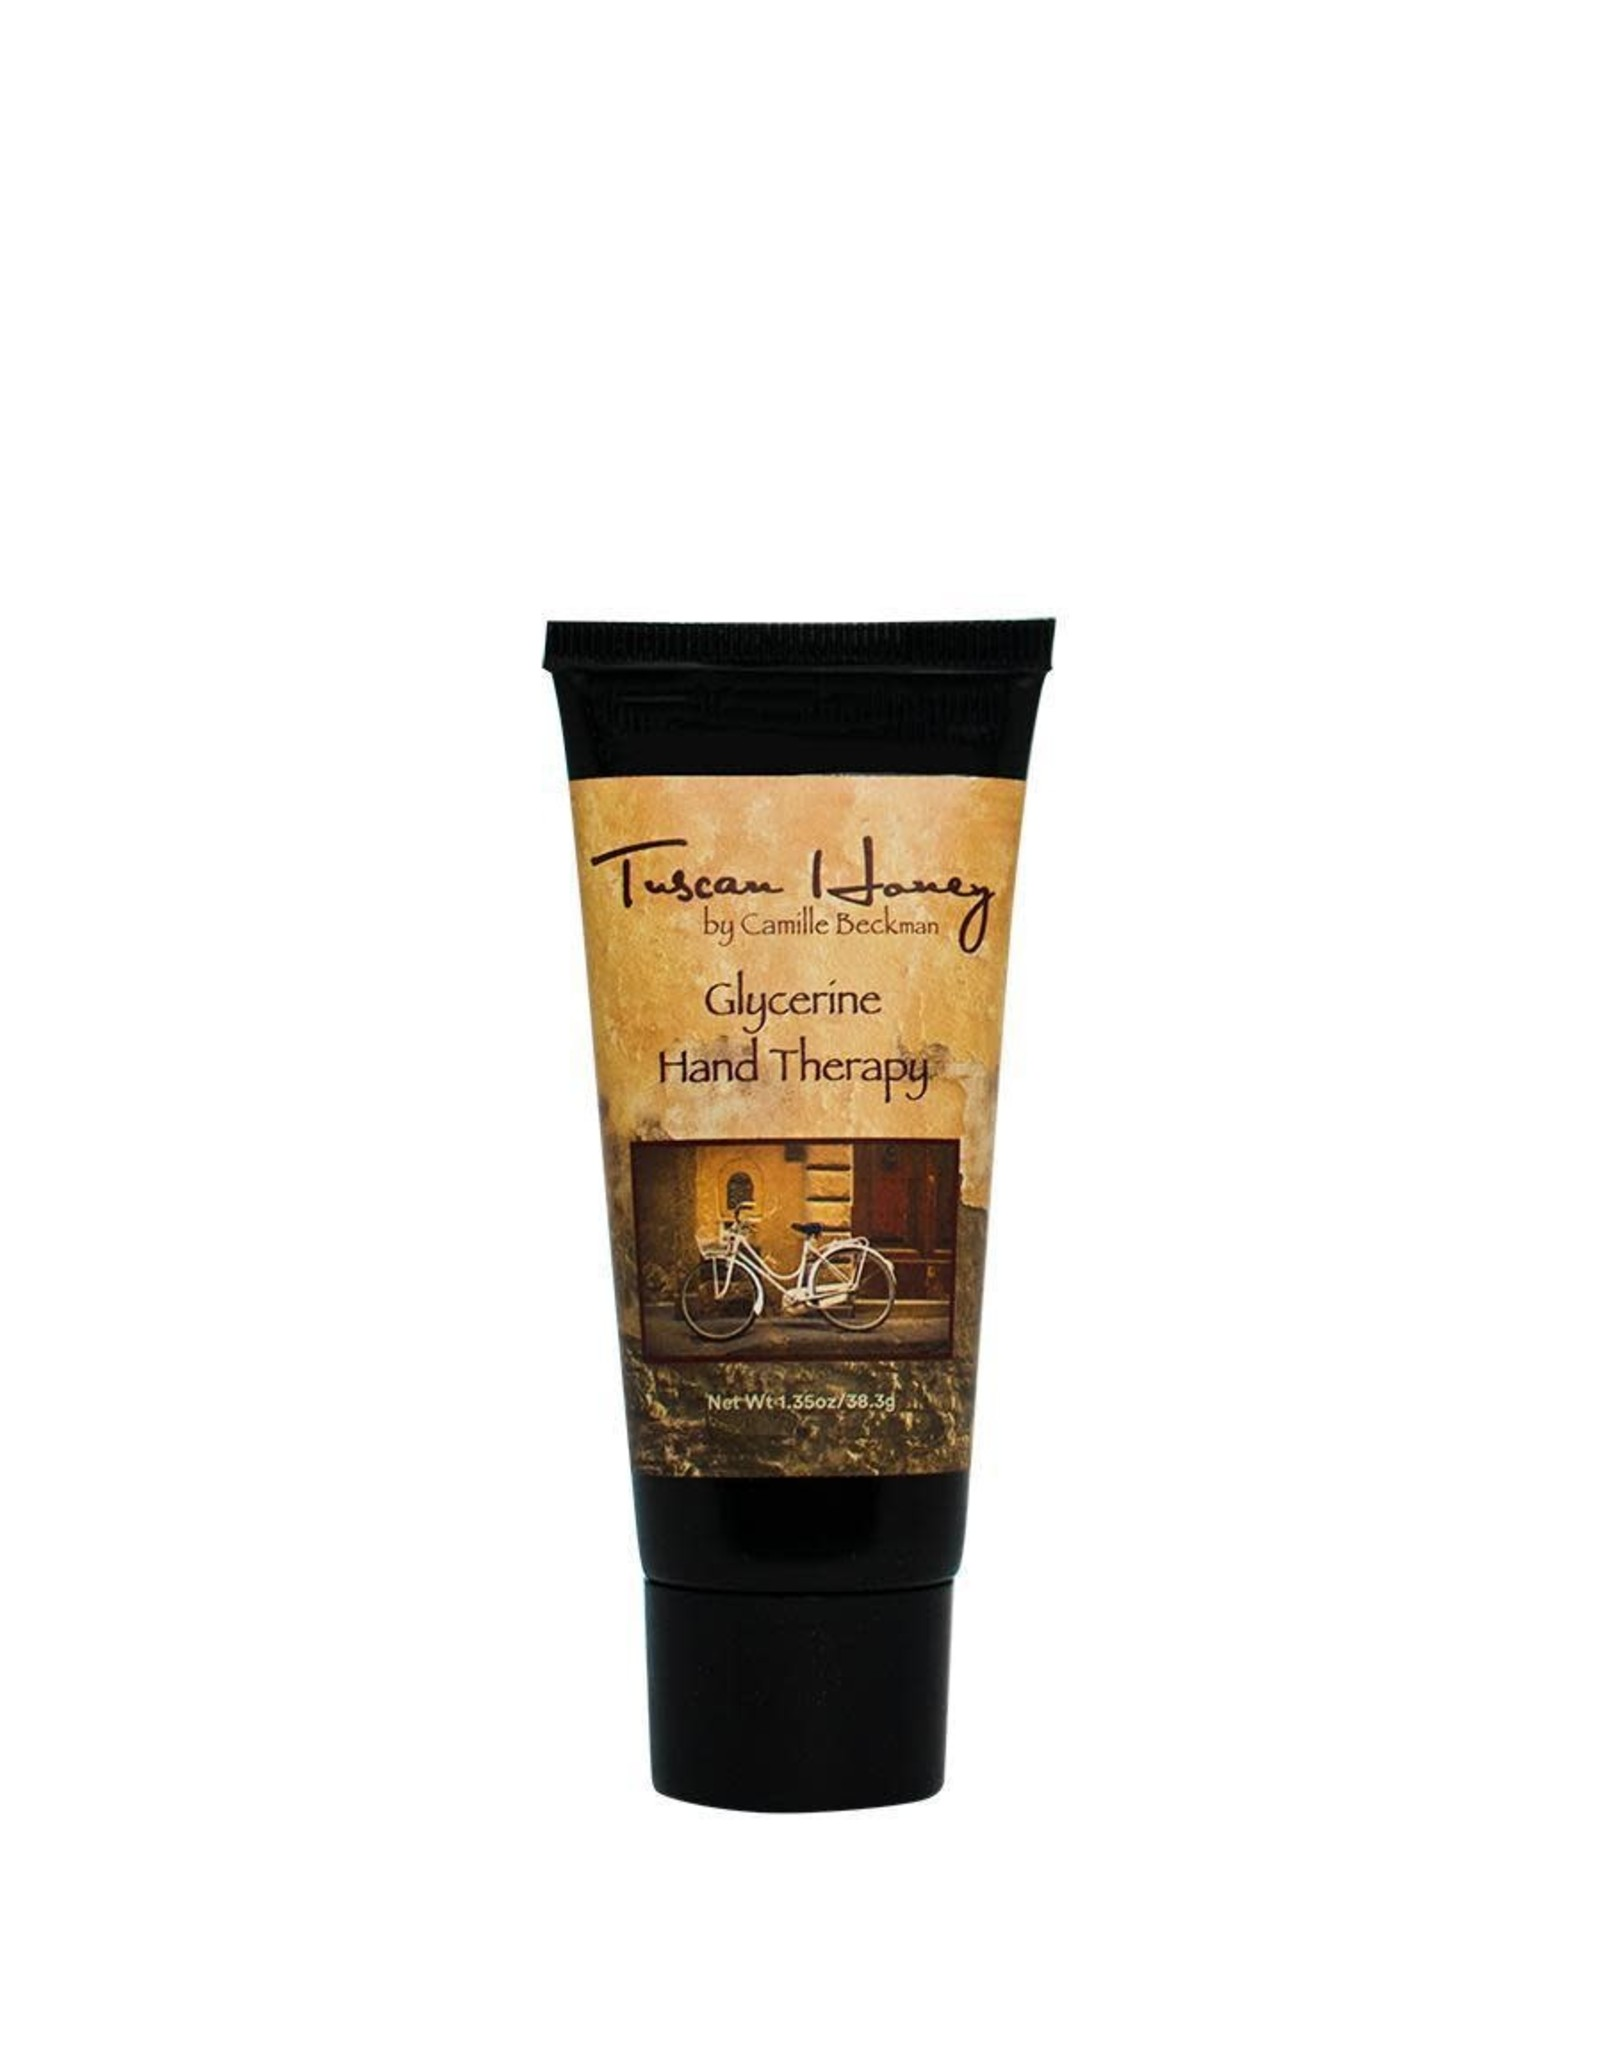 Camille Beckman 1.35oz GLYCERINE HAND THERAPY